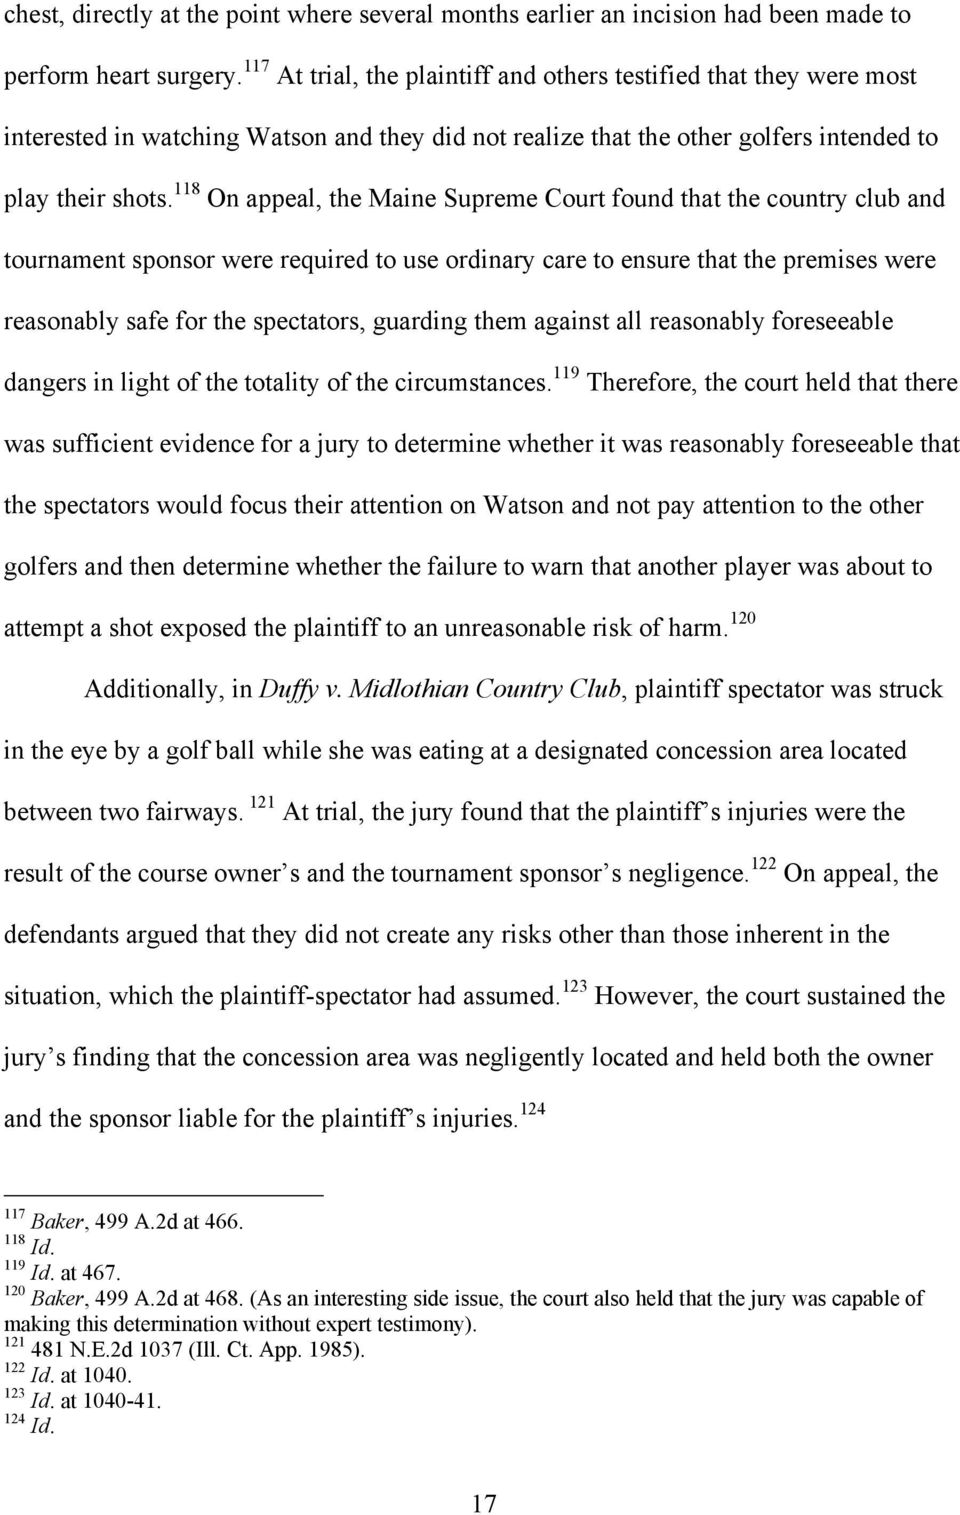 118 On appeal, the Maine Supreme Court found that the country club and tournament sponsor were required to use ordinary care to ensure that the premises were reasonably safe for the spectators,